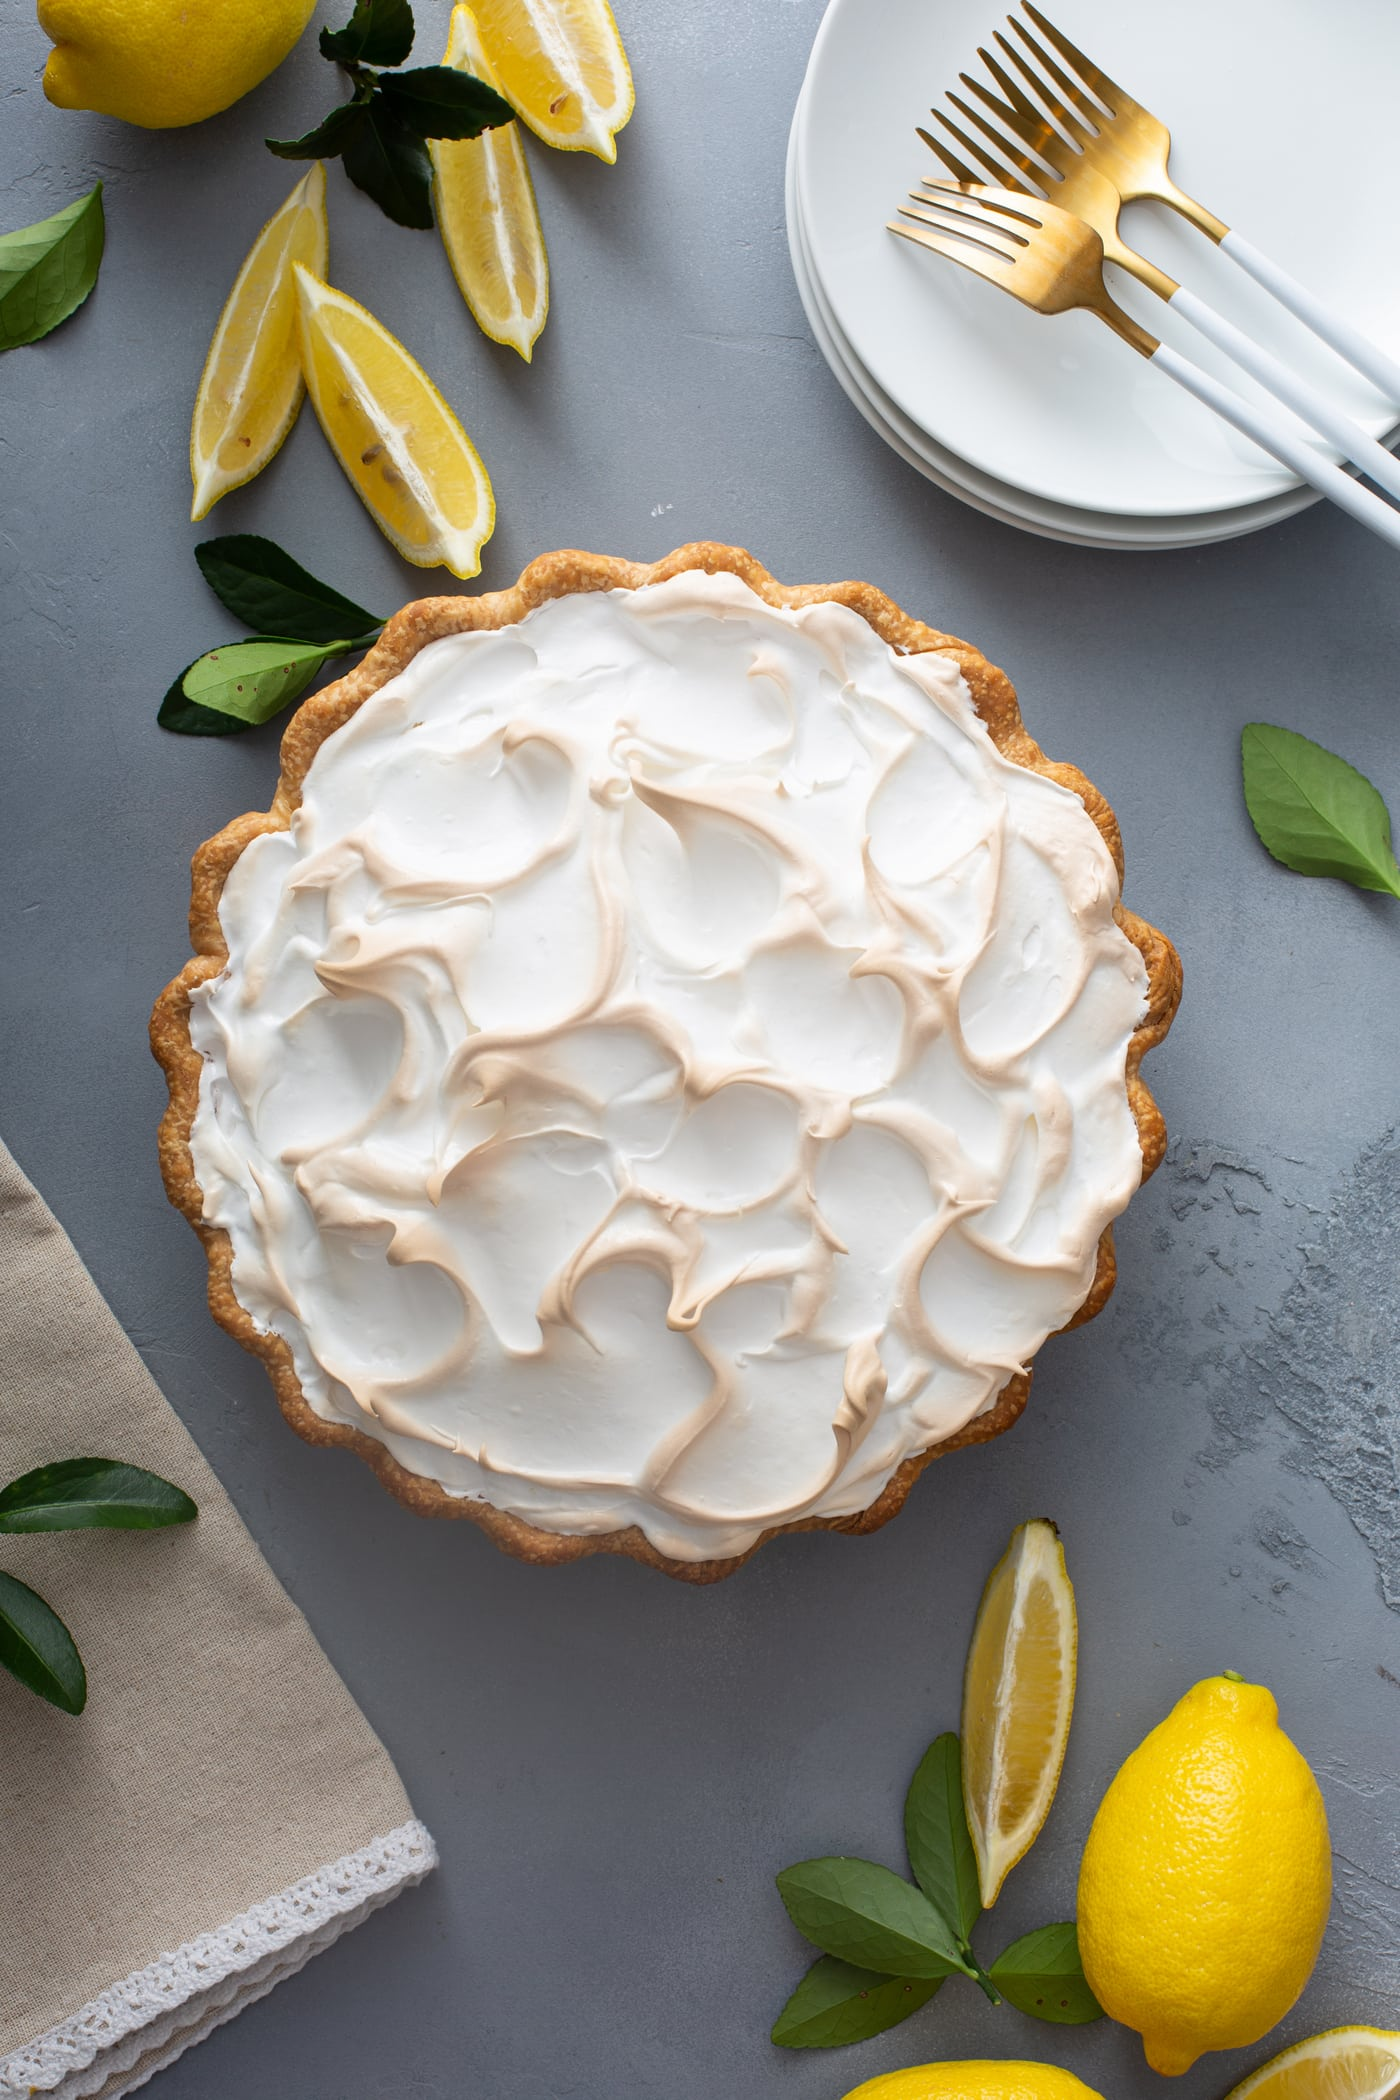 A picture of a lemon meringue pie. the meringue is fluffy and slightly browned. There are lemon wedges next to the pie.